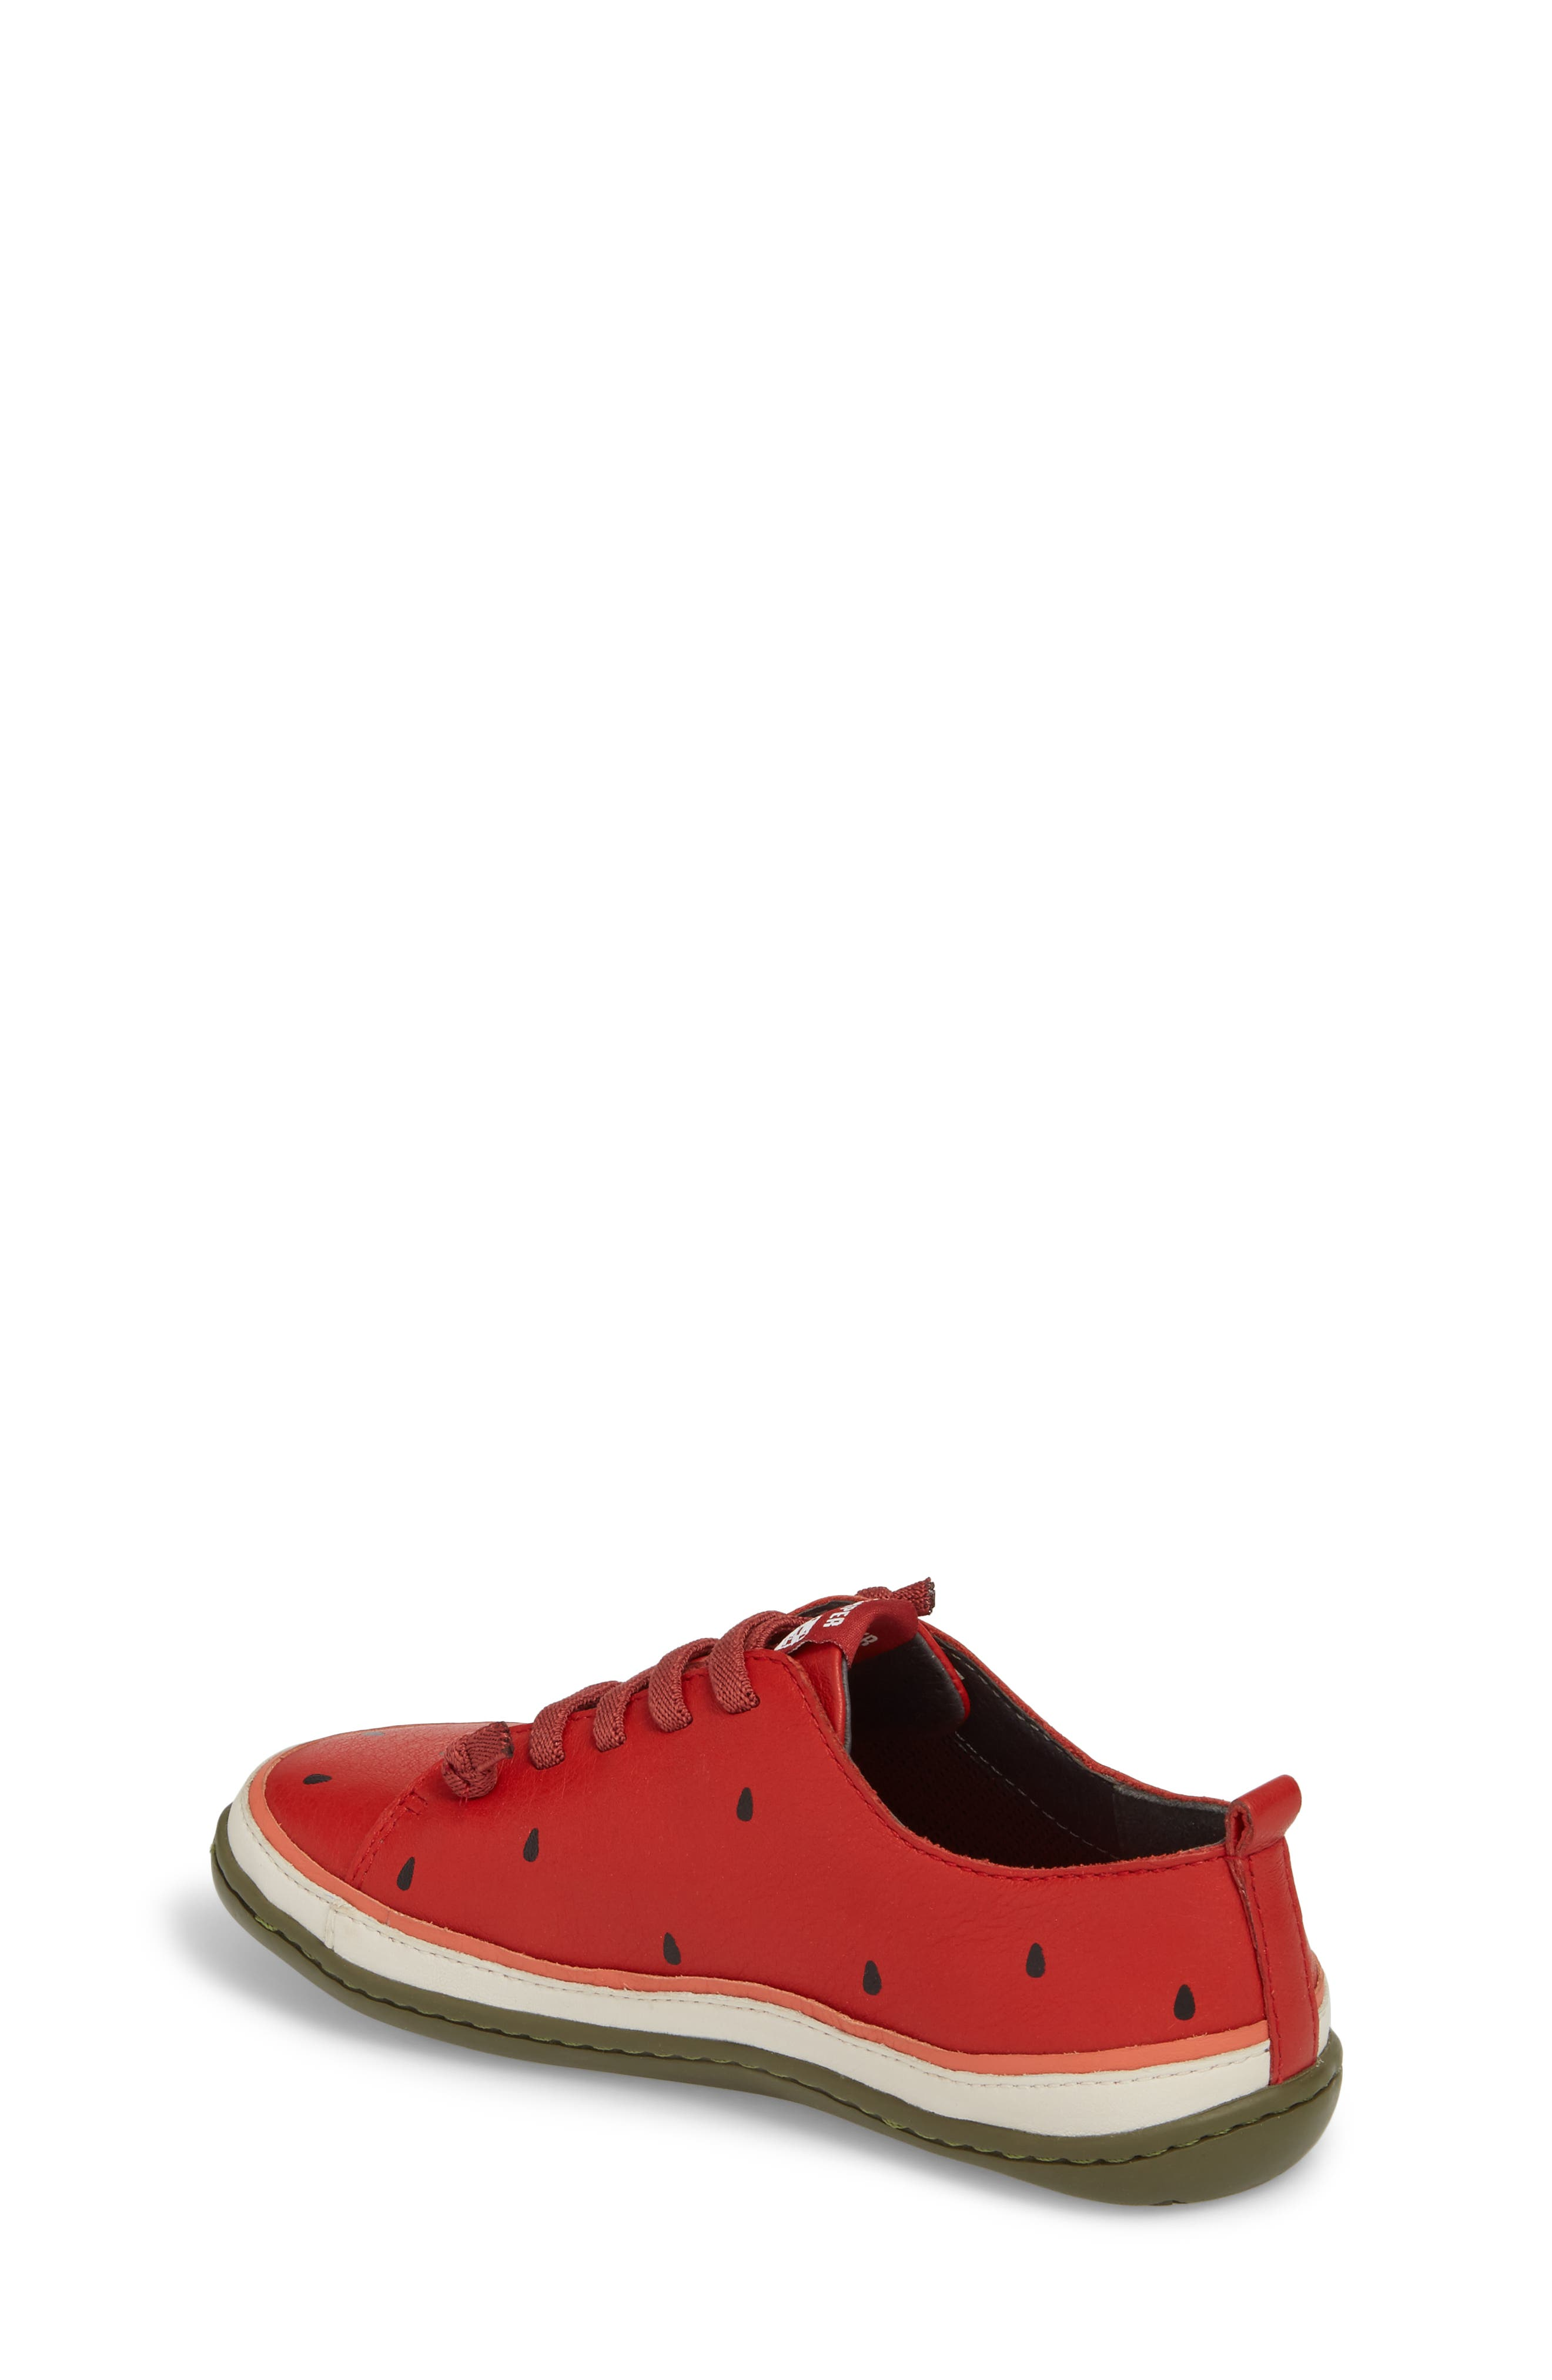 Twins Watermelon Sneaker,                             Alternate thumbnail 2, color,                             Red